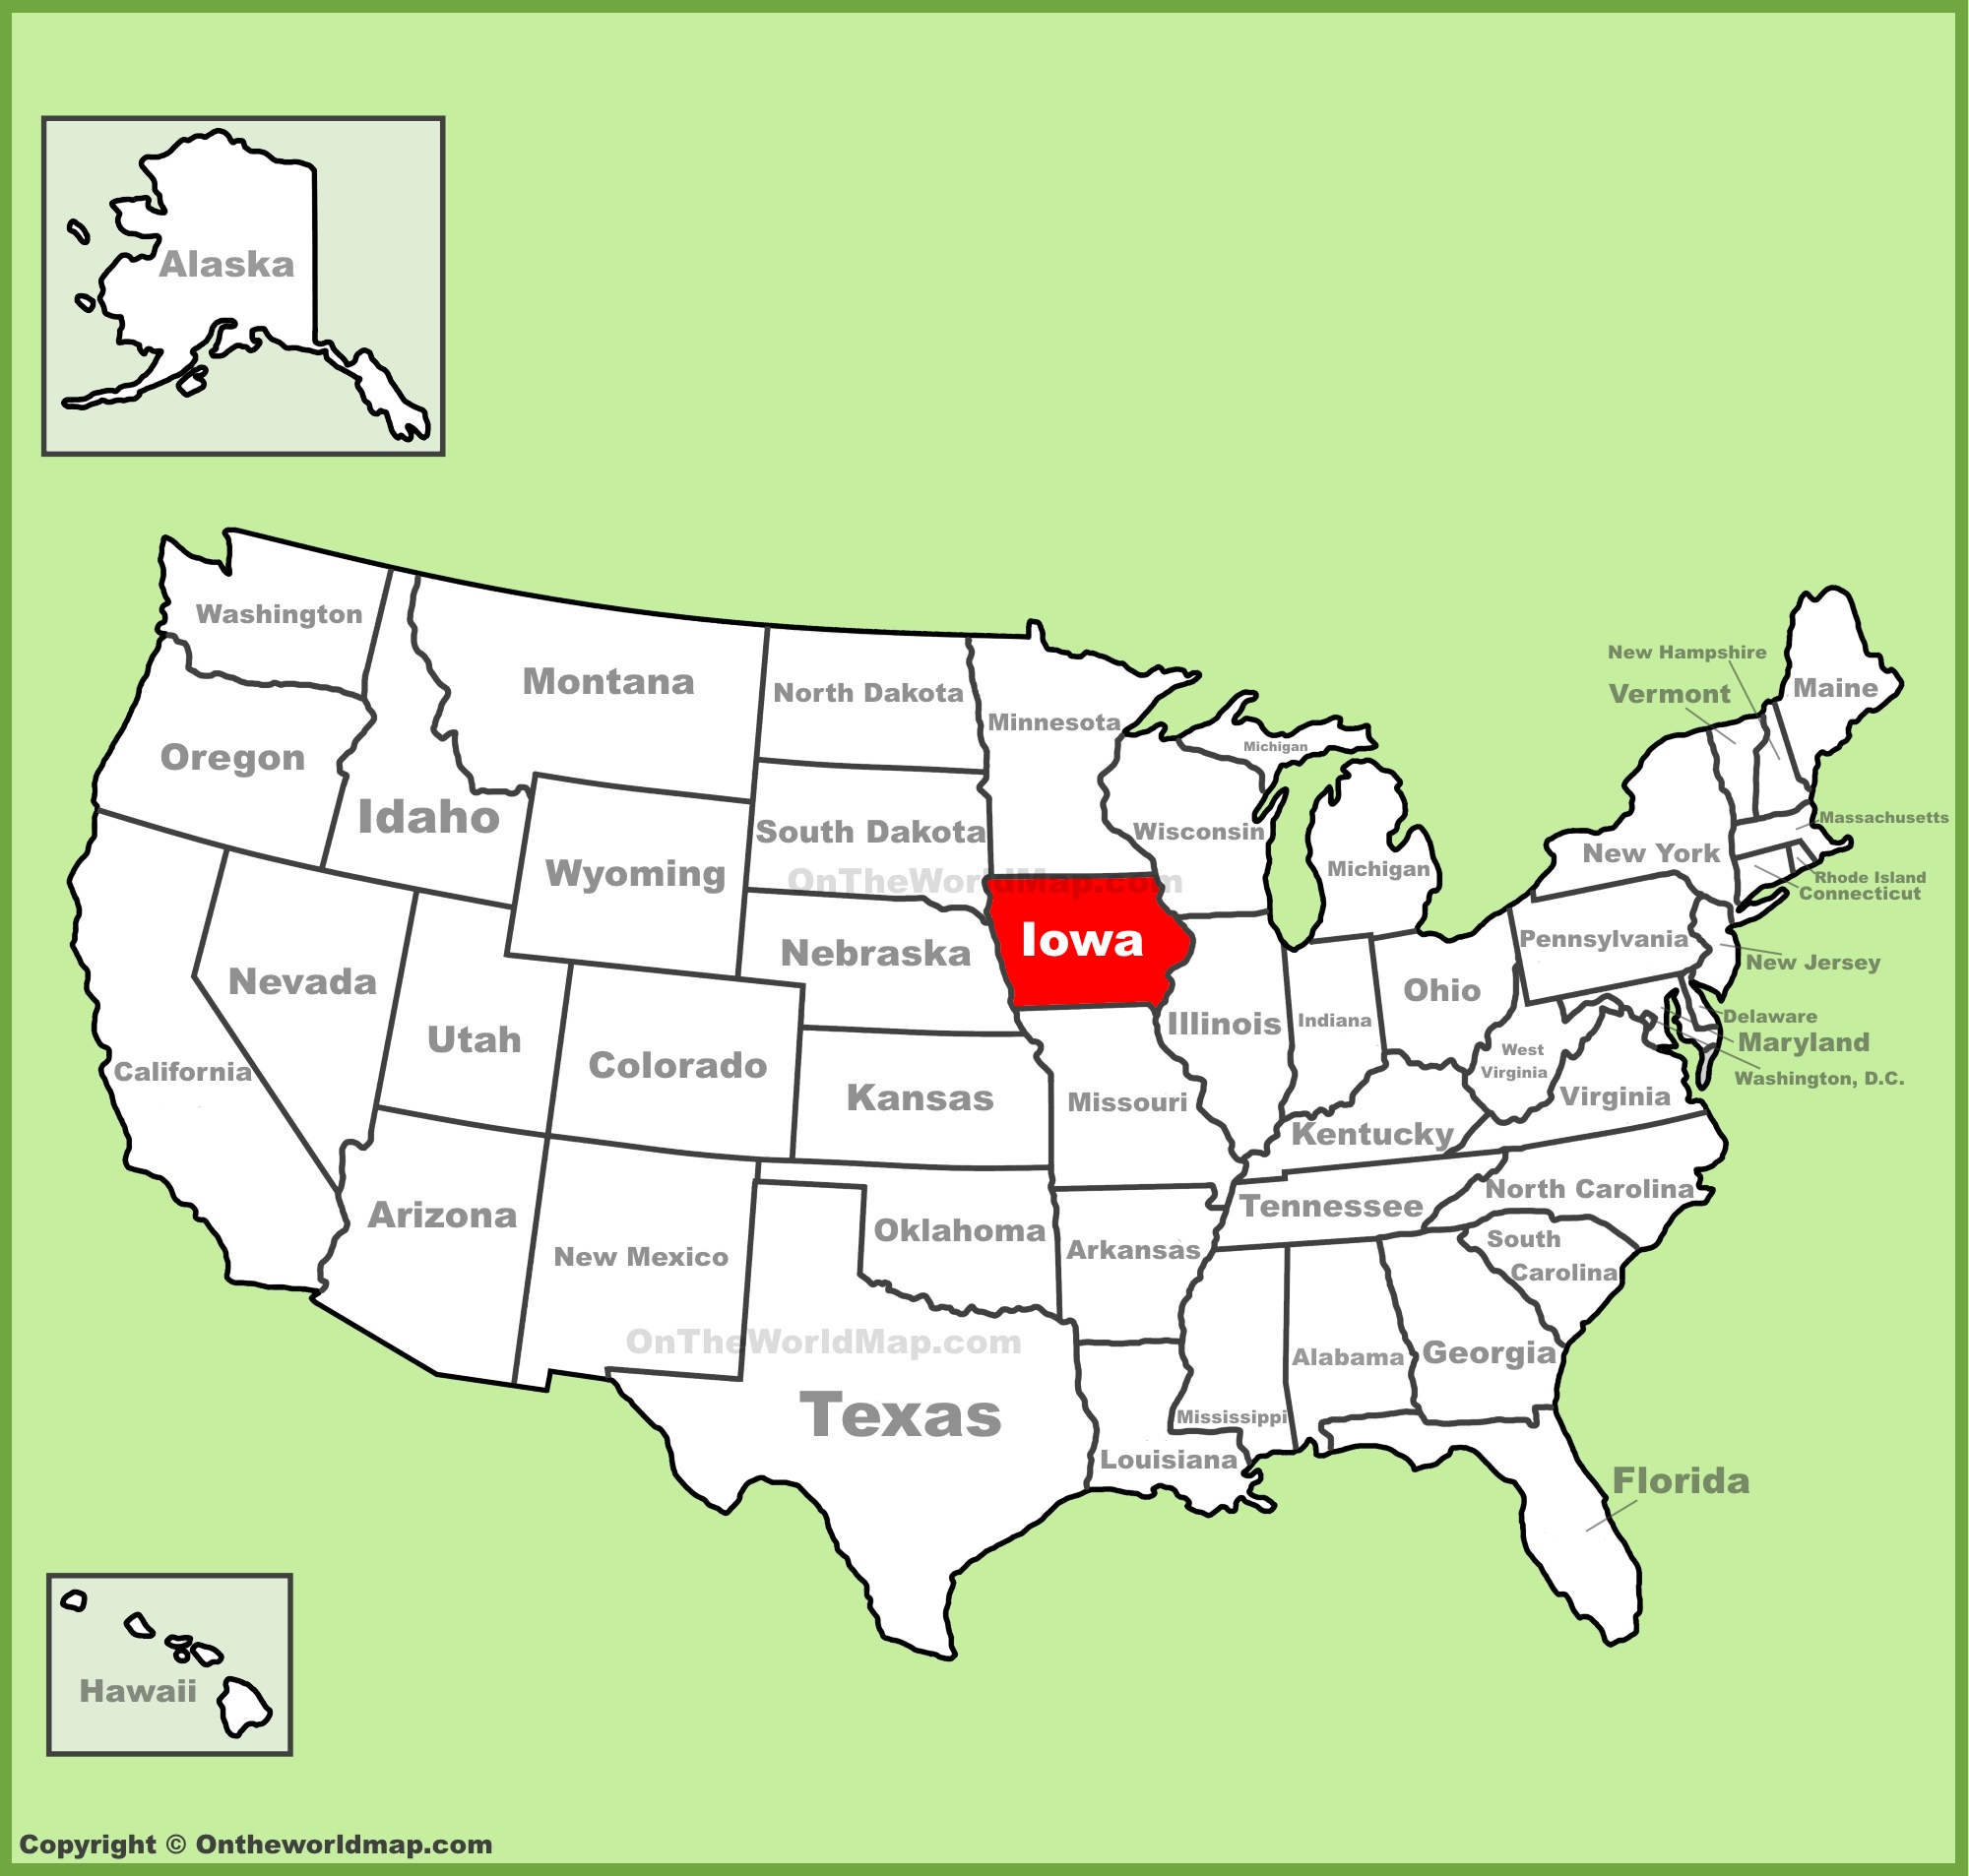 Iowa Map Us Iowa State Maps | USA | Maps of Iowa (IA)